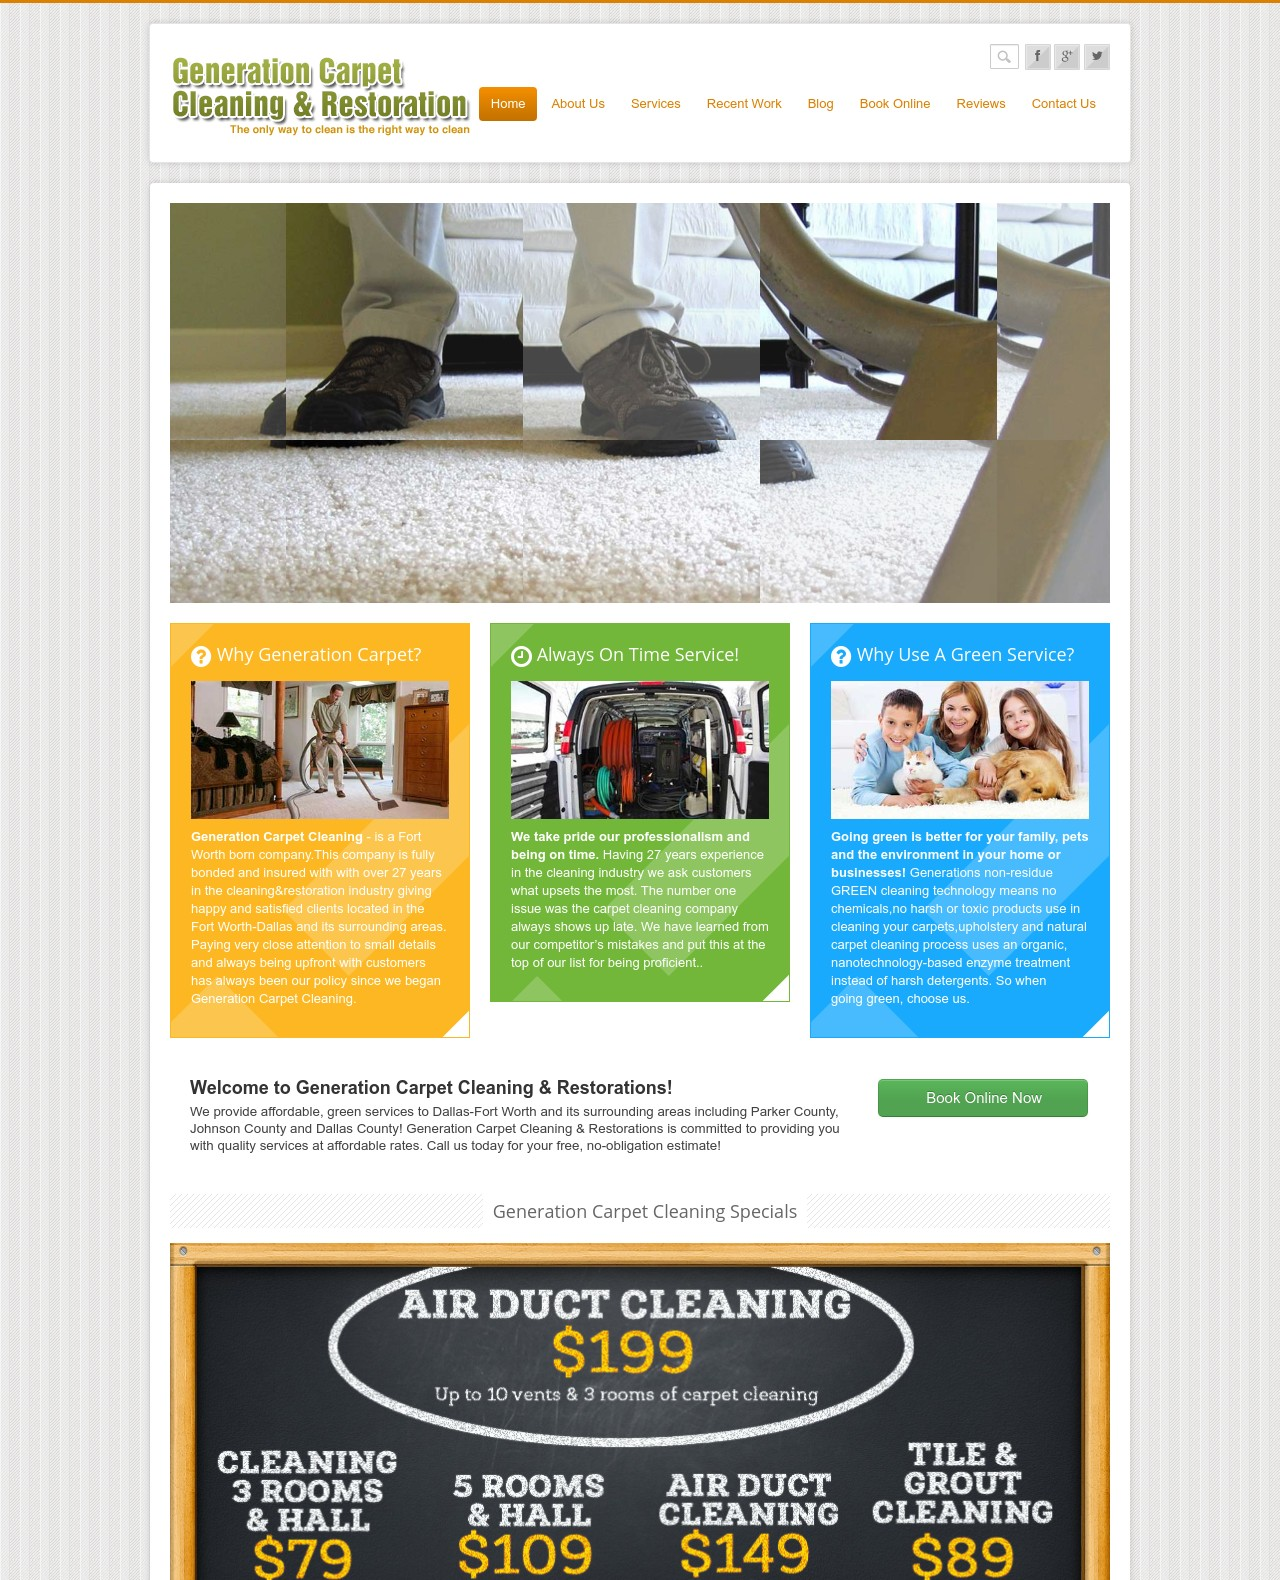 Generation Carpet Cleaning fw